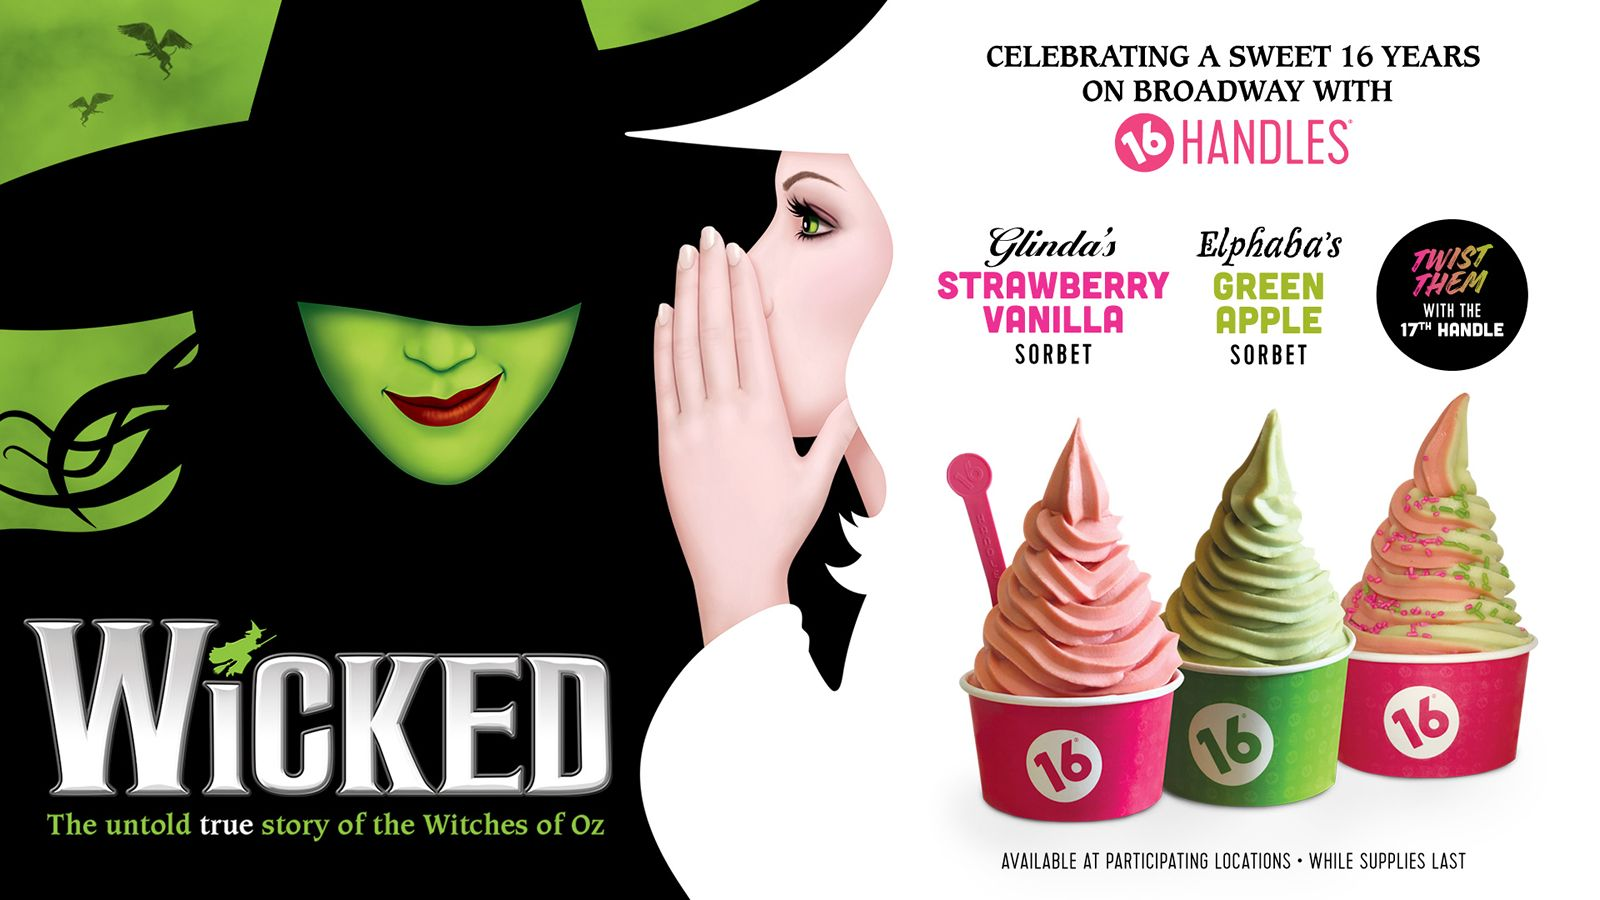 16 Handles Partners with Wicked to Celebrate the Musical's Sweet 16 Years on Broadway